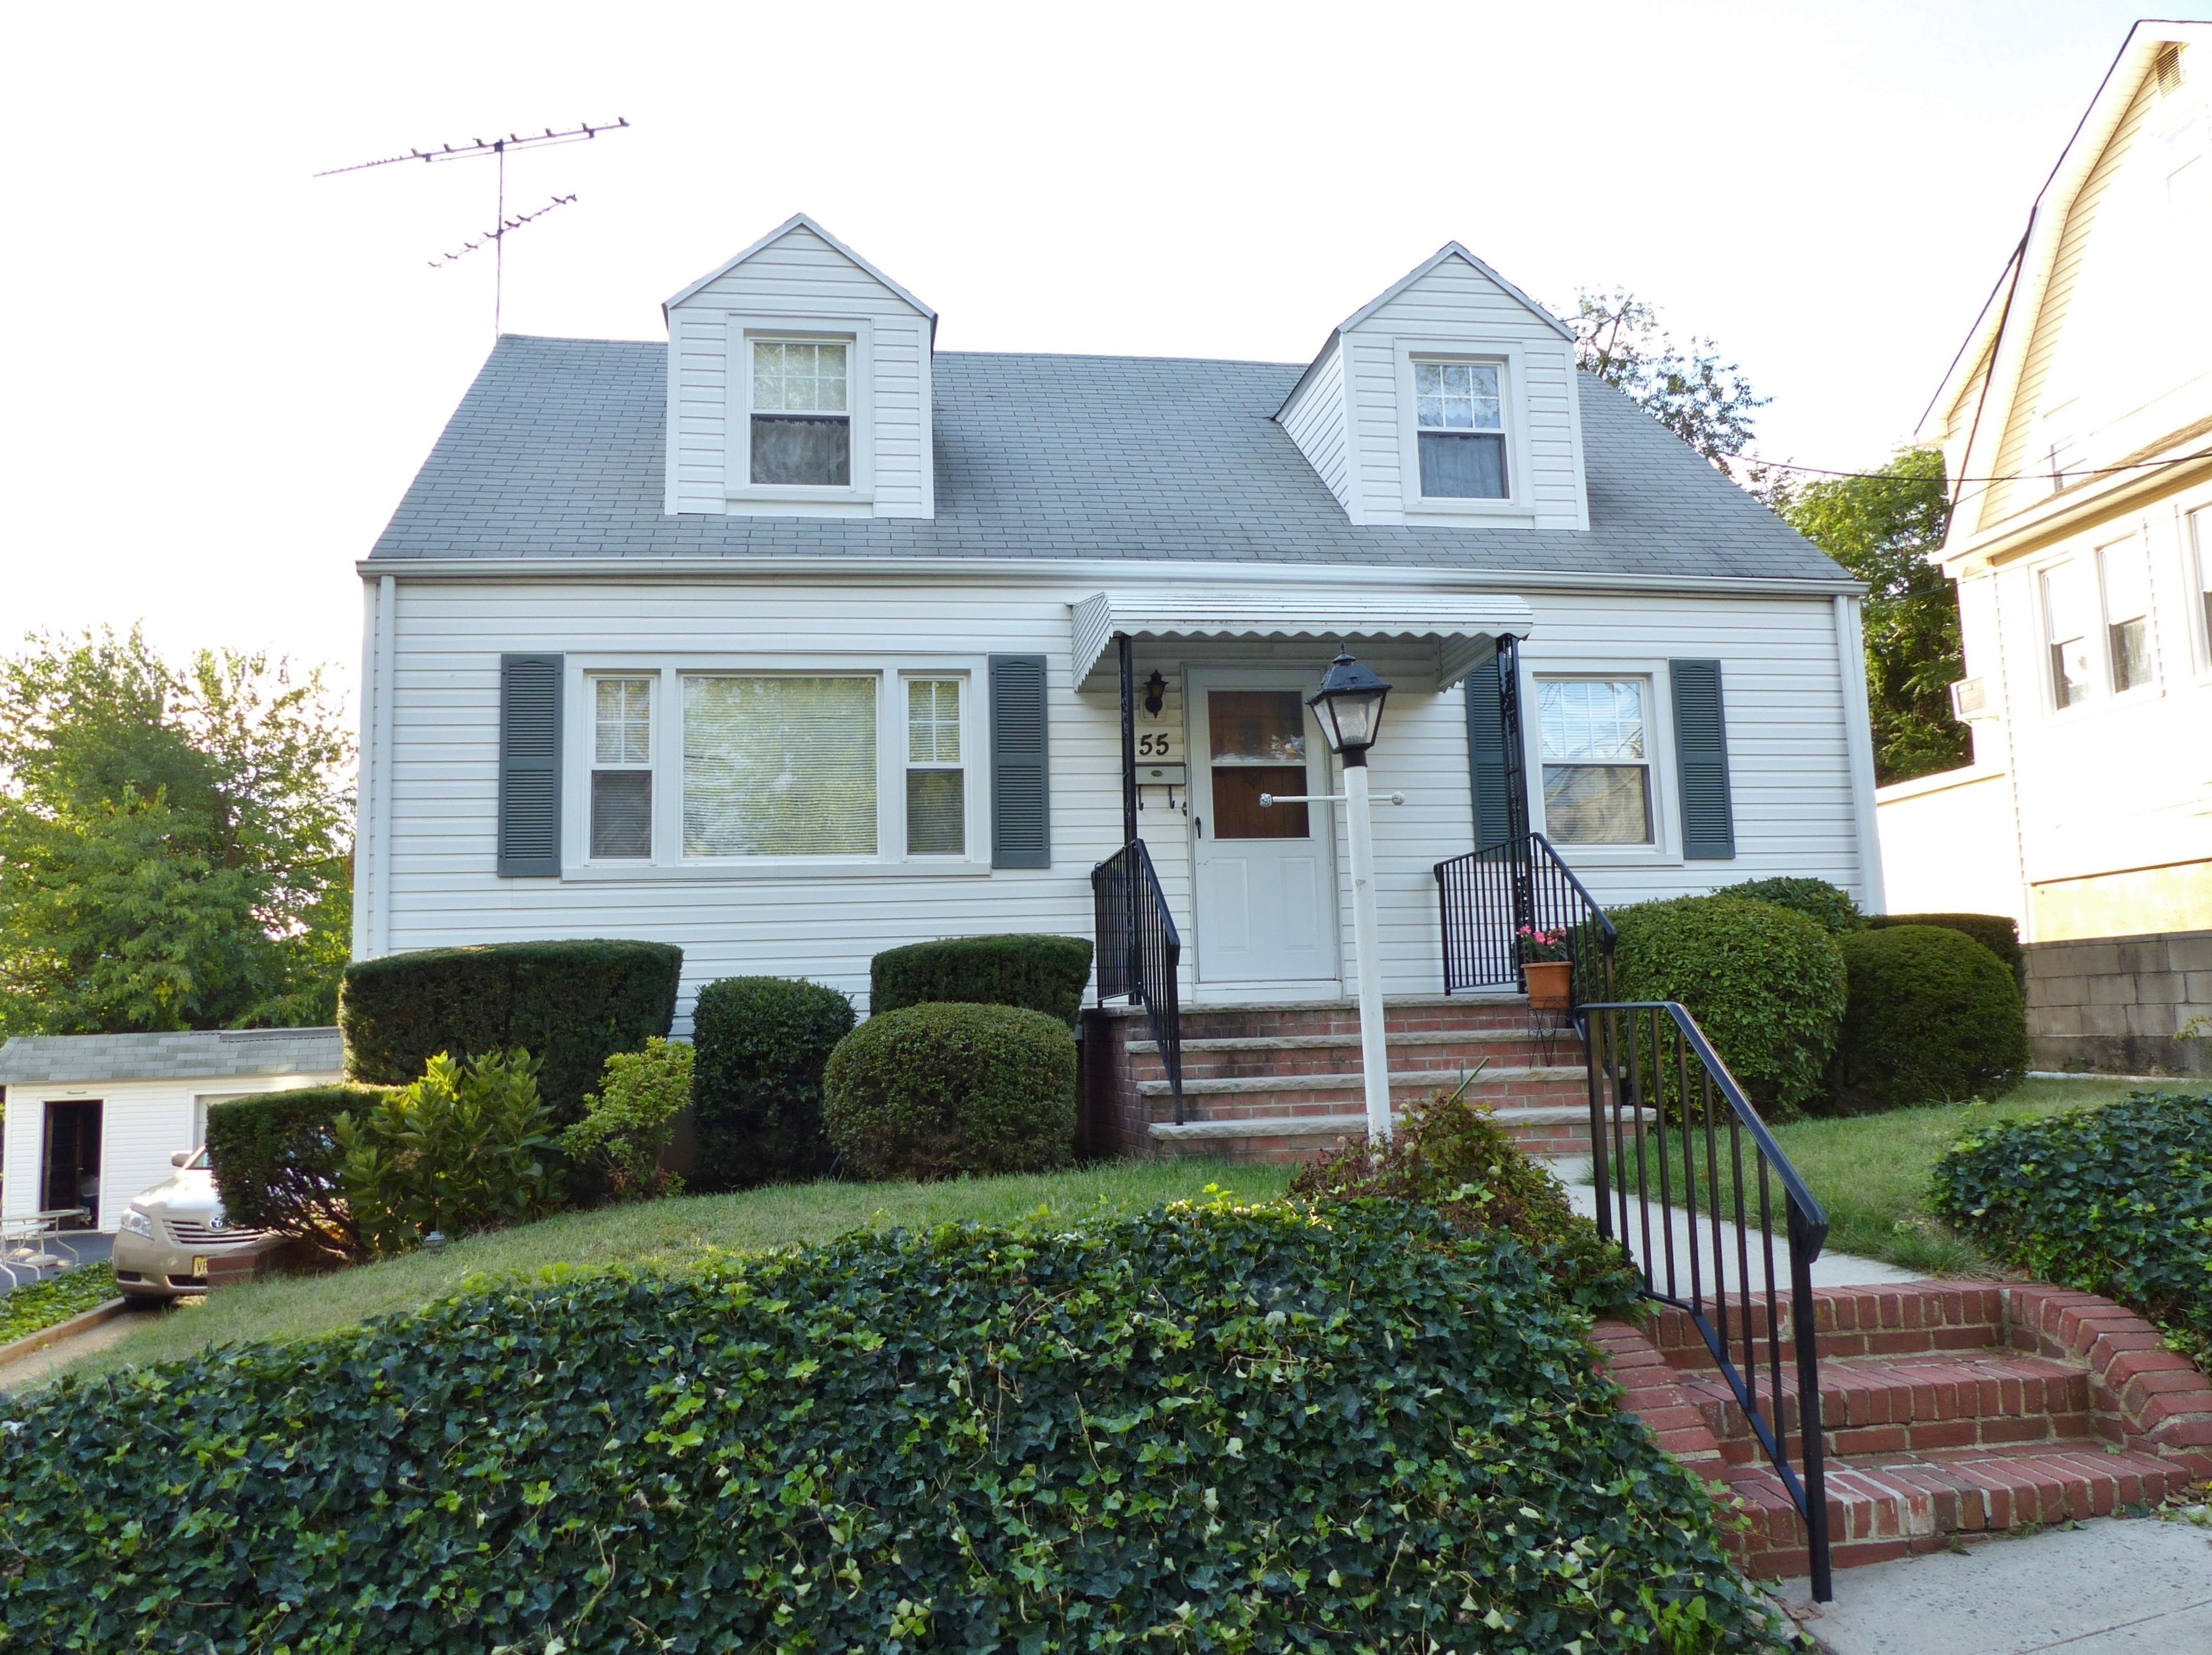 WELL MAINTAINED VINYL SIDED CAPE WITH NEWER ROOF & WINDOWS